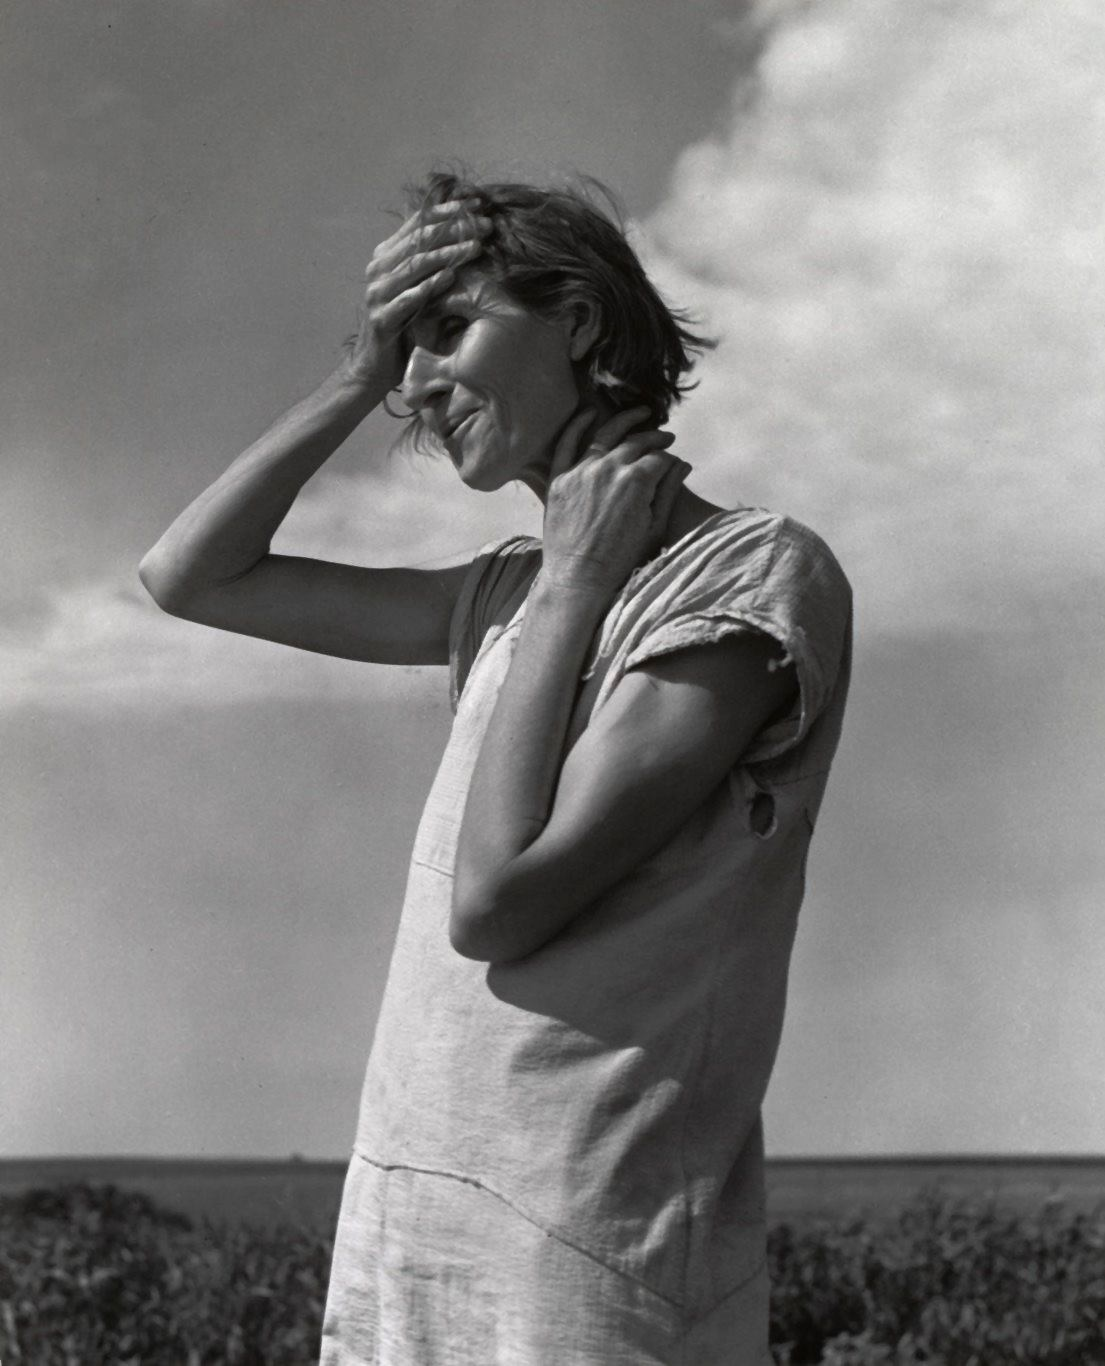 Fotó: Dorothea Lange: Woman of the High Plains, Texas Panhandle, June 1938 © The Dorothea Lange Collection, the Oakland Museum of California<br />Gift of Paul S. Taylor